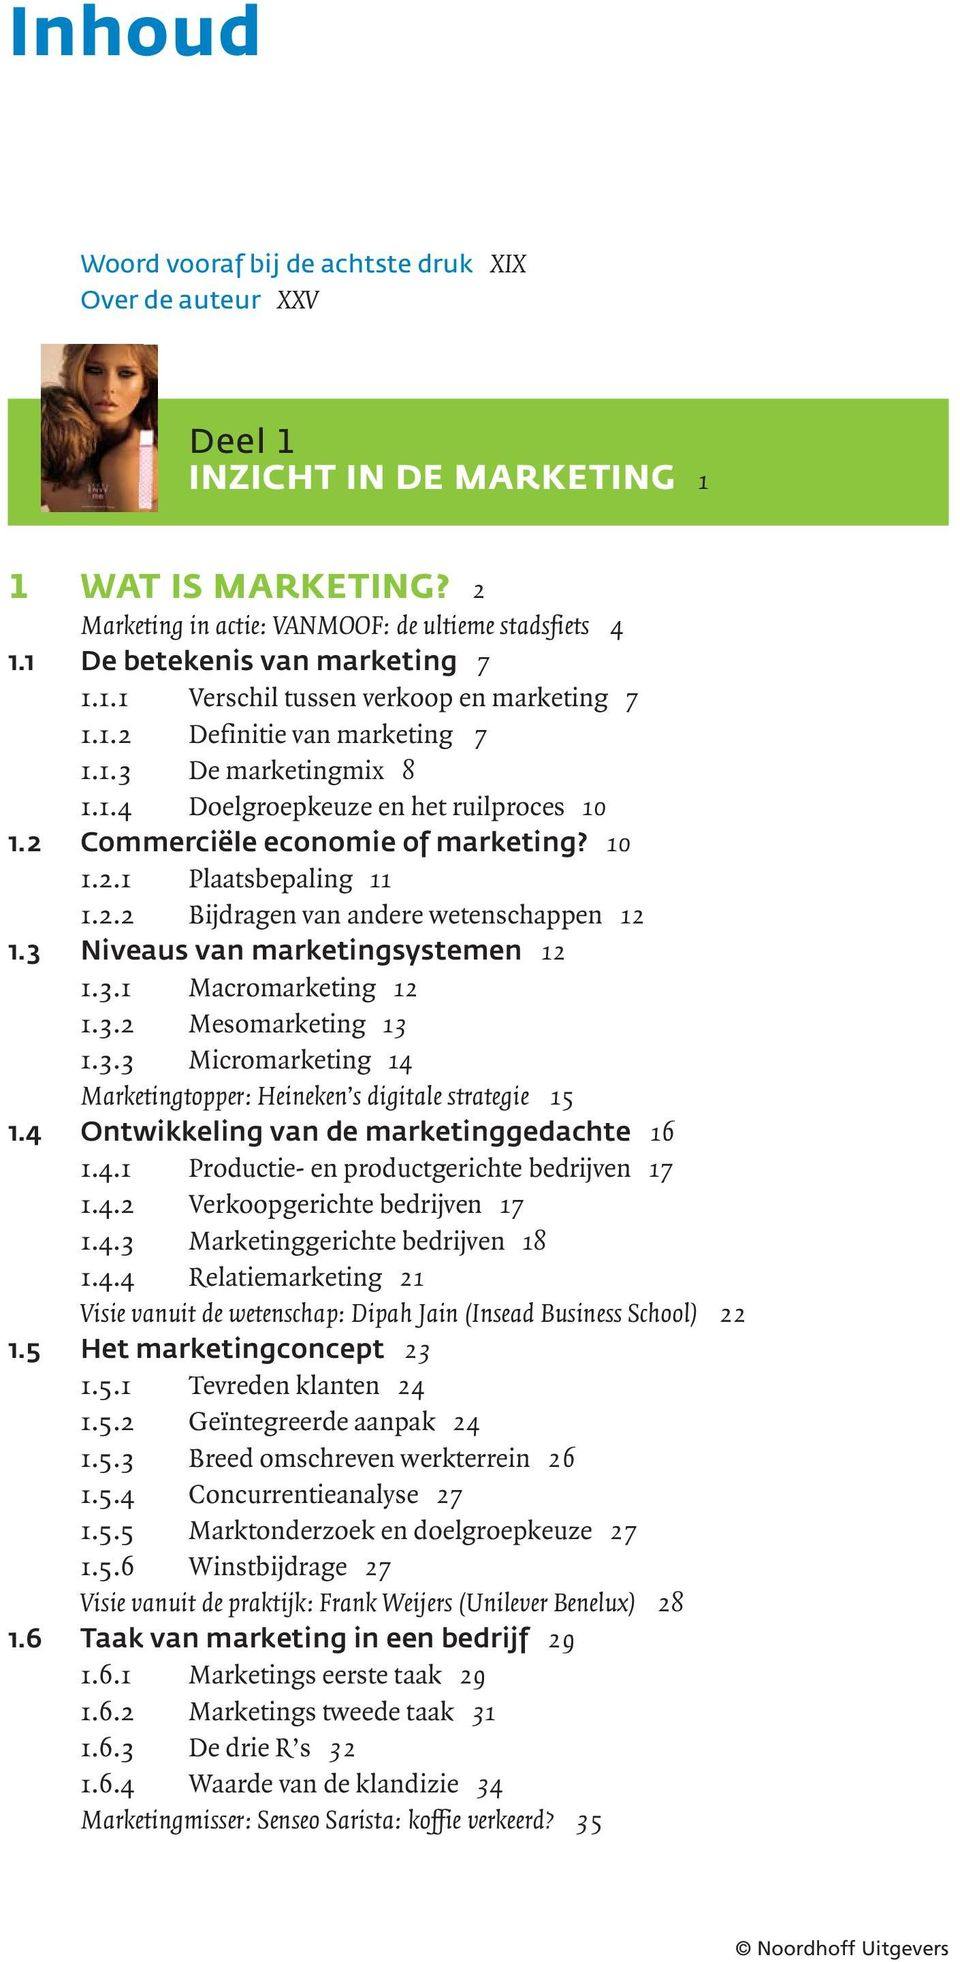 2 Commerciële economie of marketing? 10 1.2.1 Plaatsbepaling 11 1.2.2 Bijdragen van andere wetenschappen 12 1.3 Niveaus van marketingsystemen 12 1.3.1 Macromarketing 12 1.3.2 Mesomarketing 13 1.3.3 Micromarketing 14 Marketingtopper: Heineken s digitale strategie 15 1.